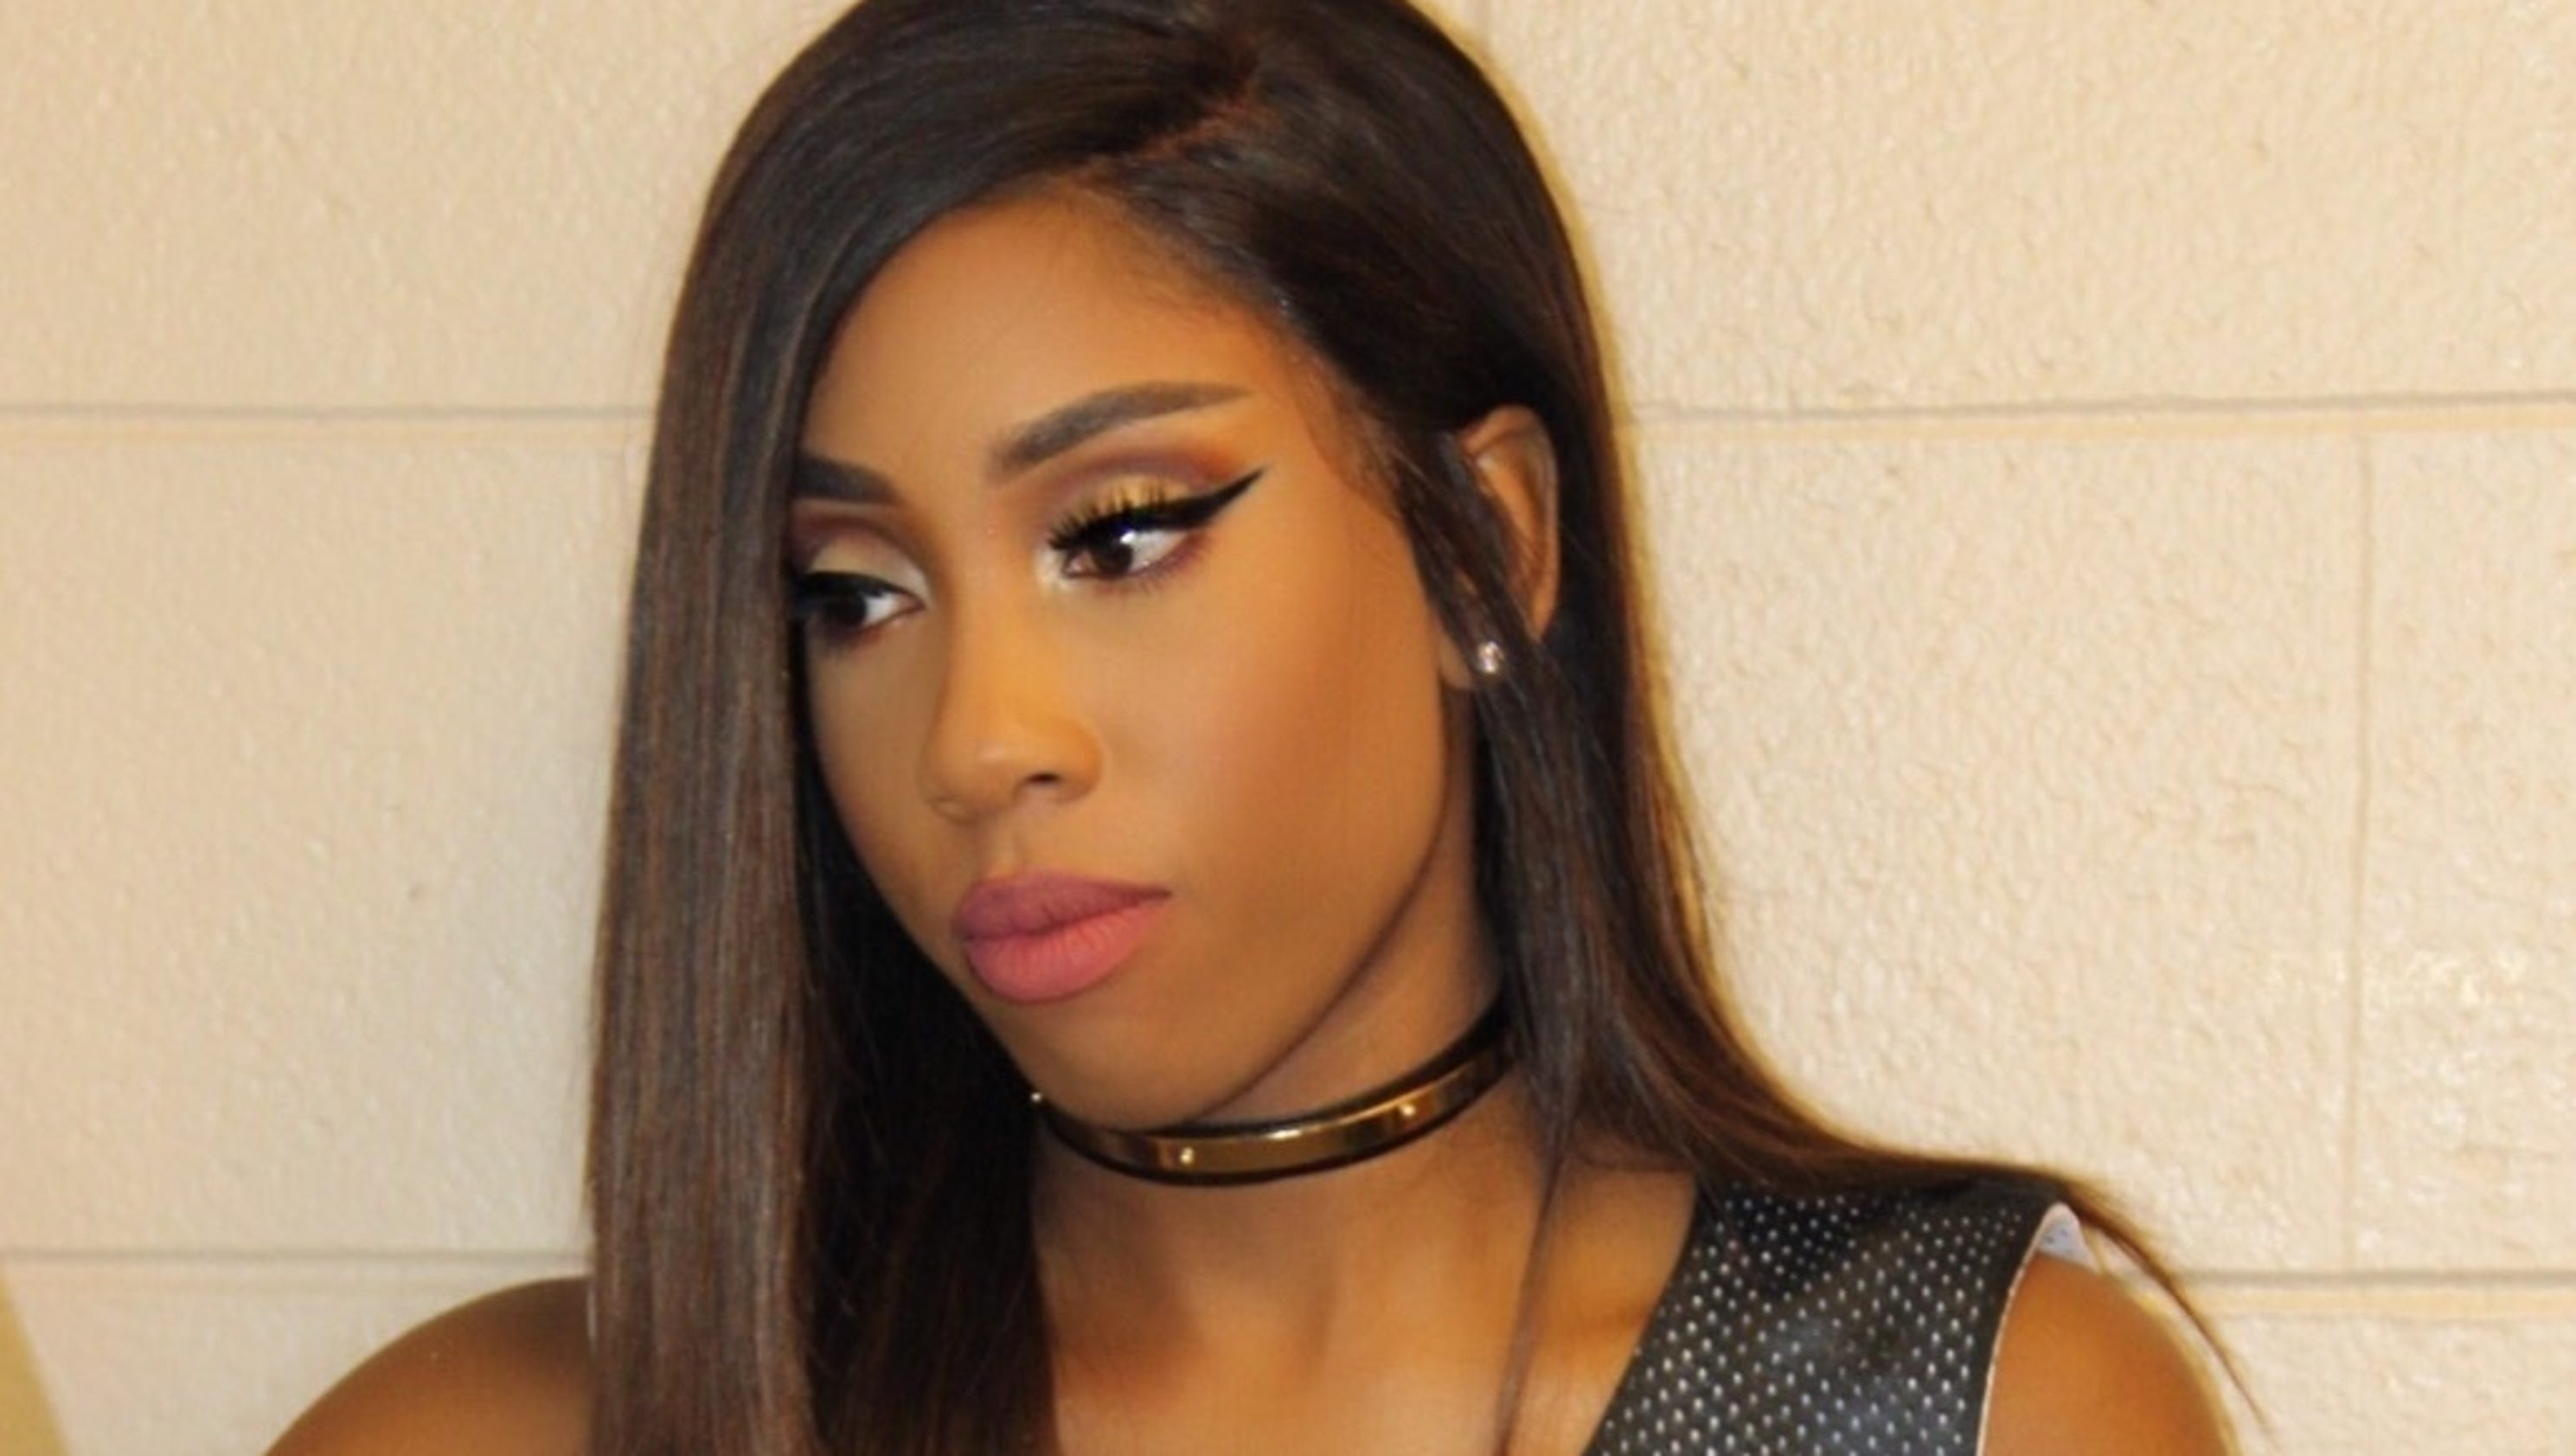 streeter chatrooms Amber denise streeter (born july 7, 1986), known by her stage name sevyn  streeter, is an american singer and songwriter, best known for being a member  of.